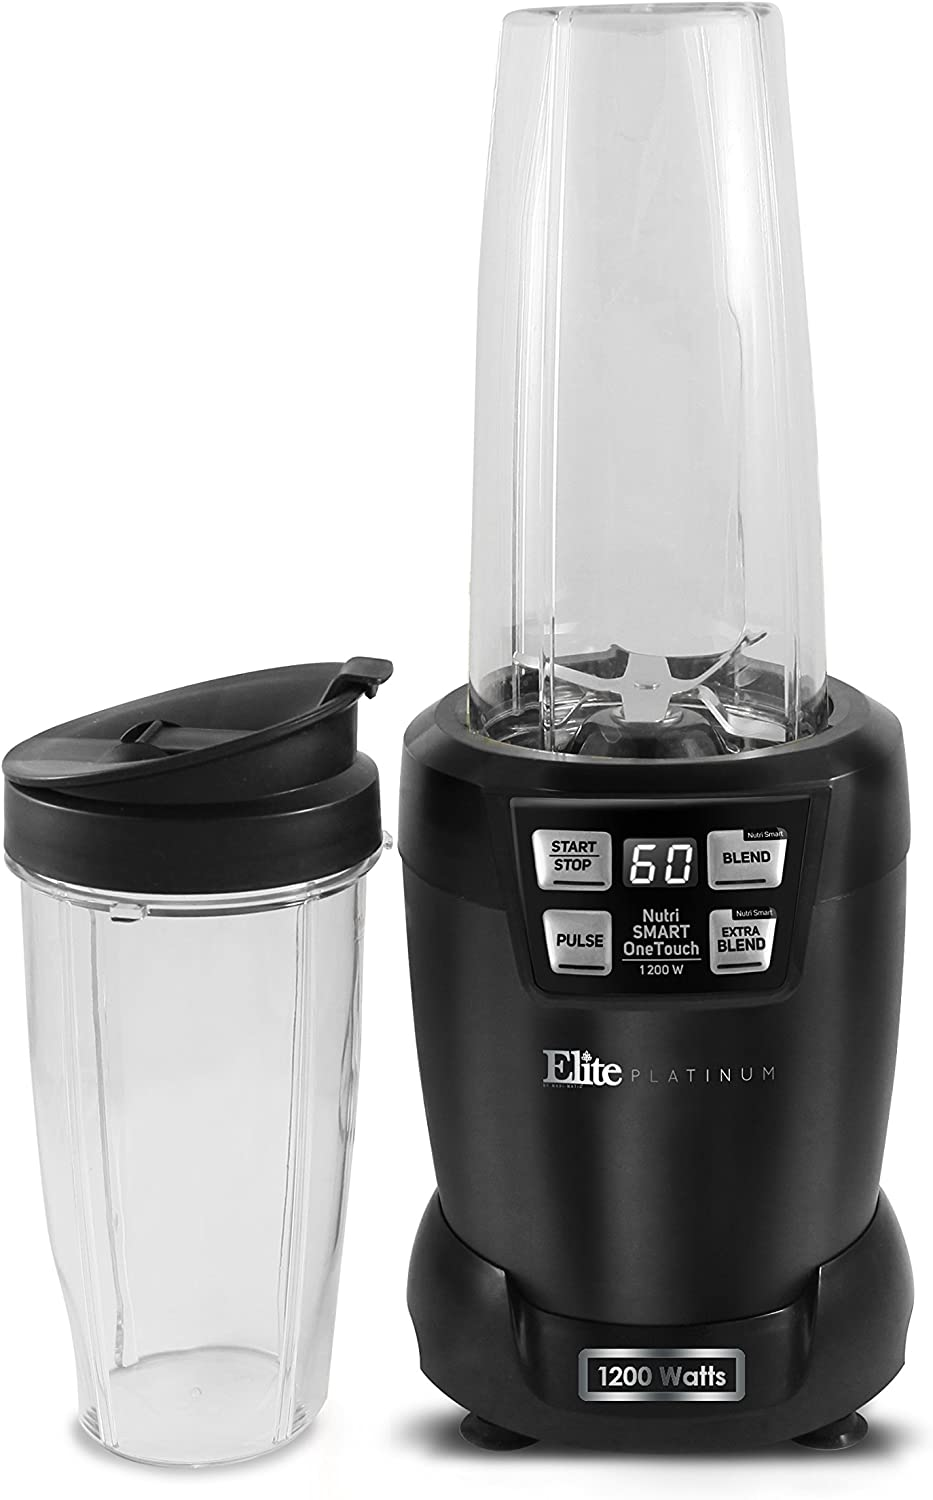 Elite Platinum EPB-5455 Hi-Q Nutri Smart Blender with 33 oz and 27 oz Tritan Blending Cups 1200W, Black